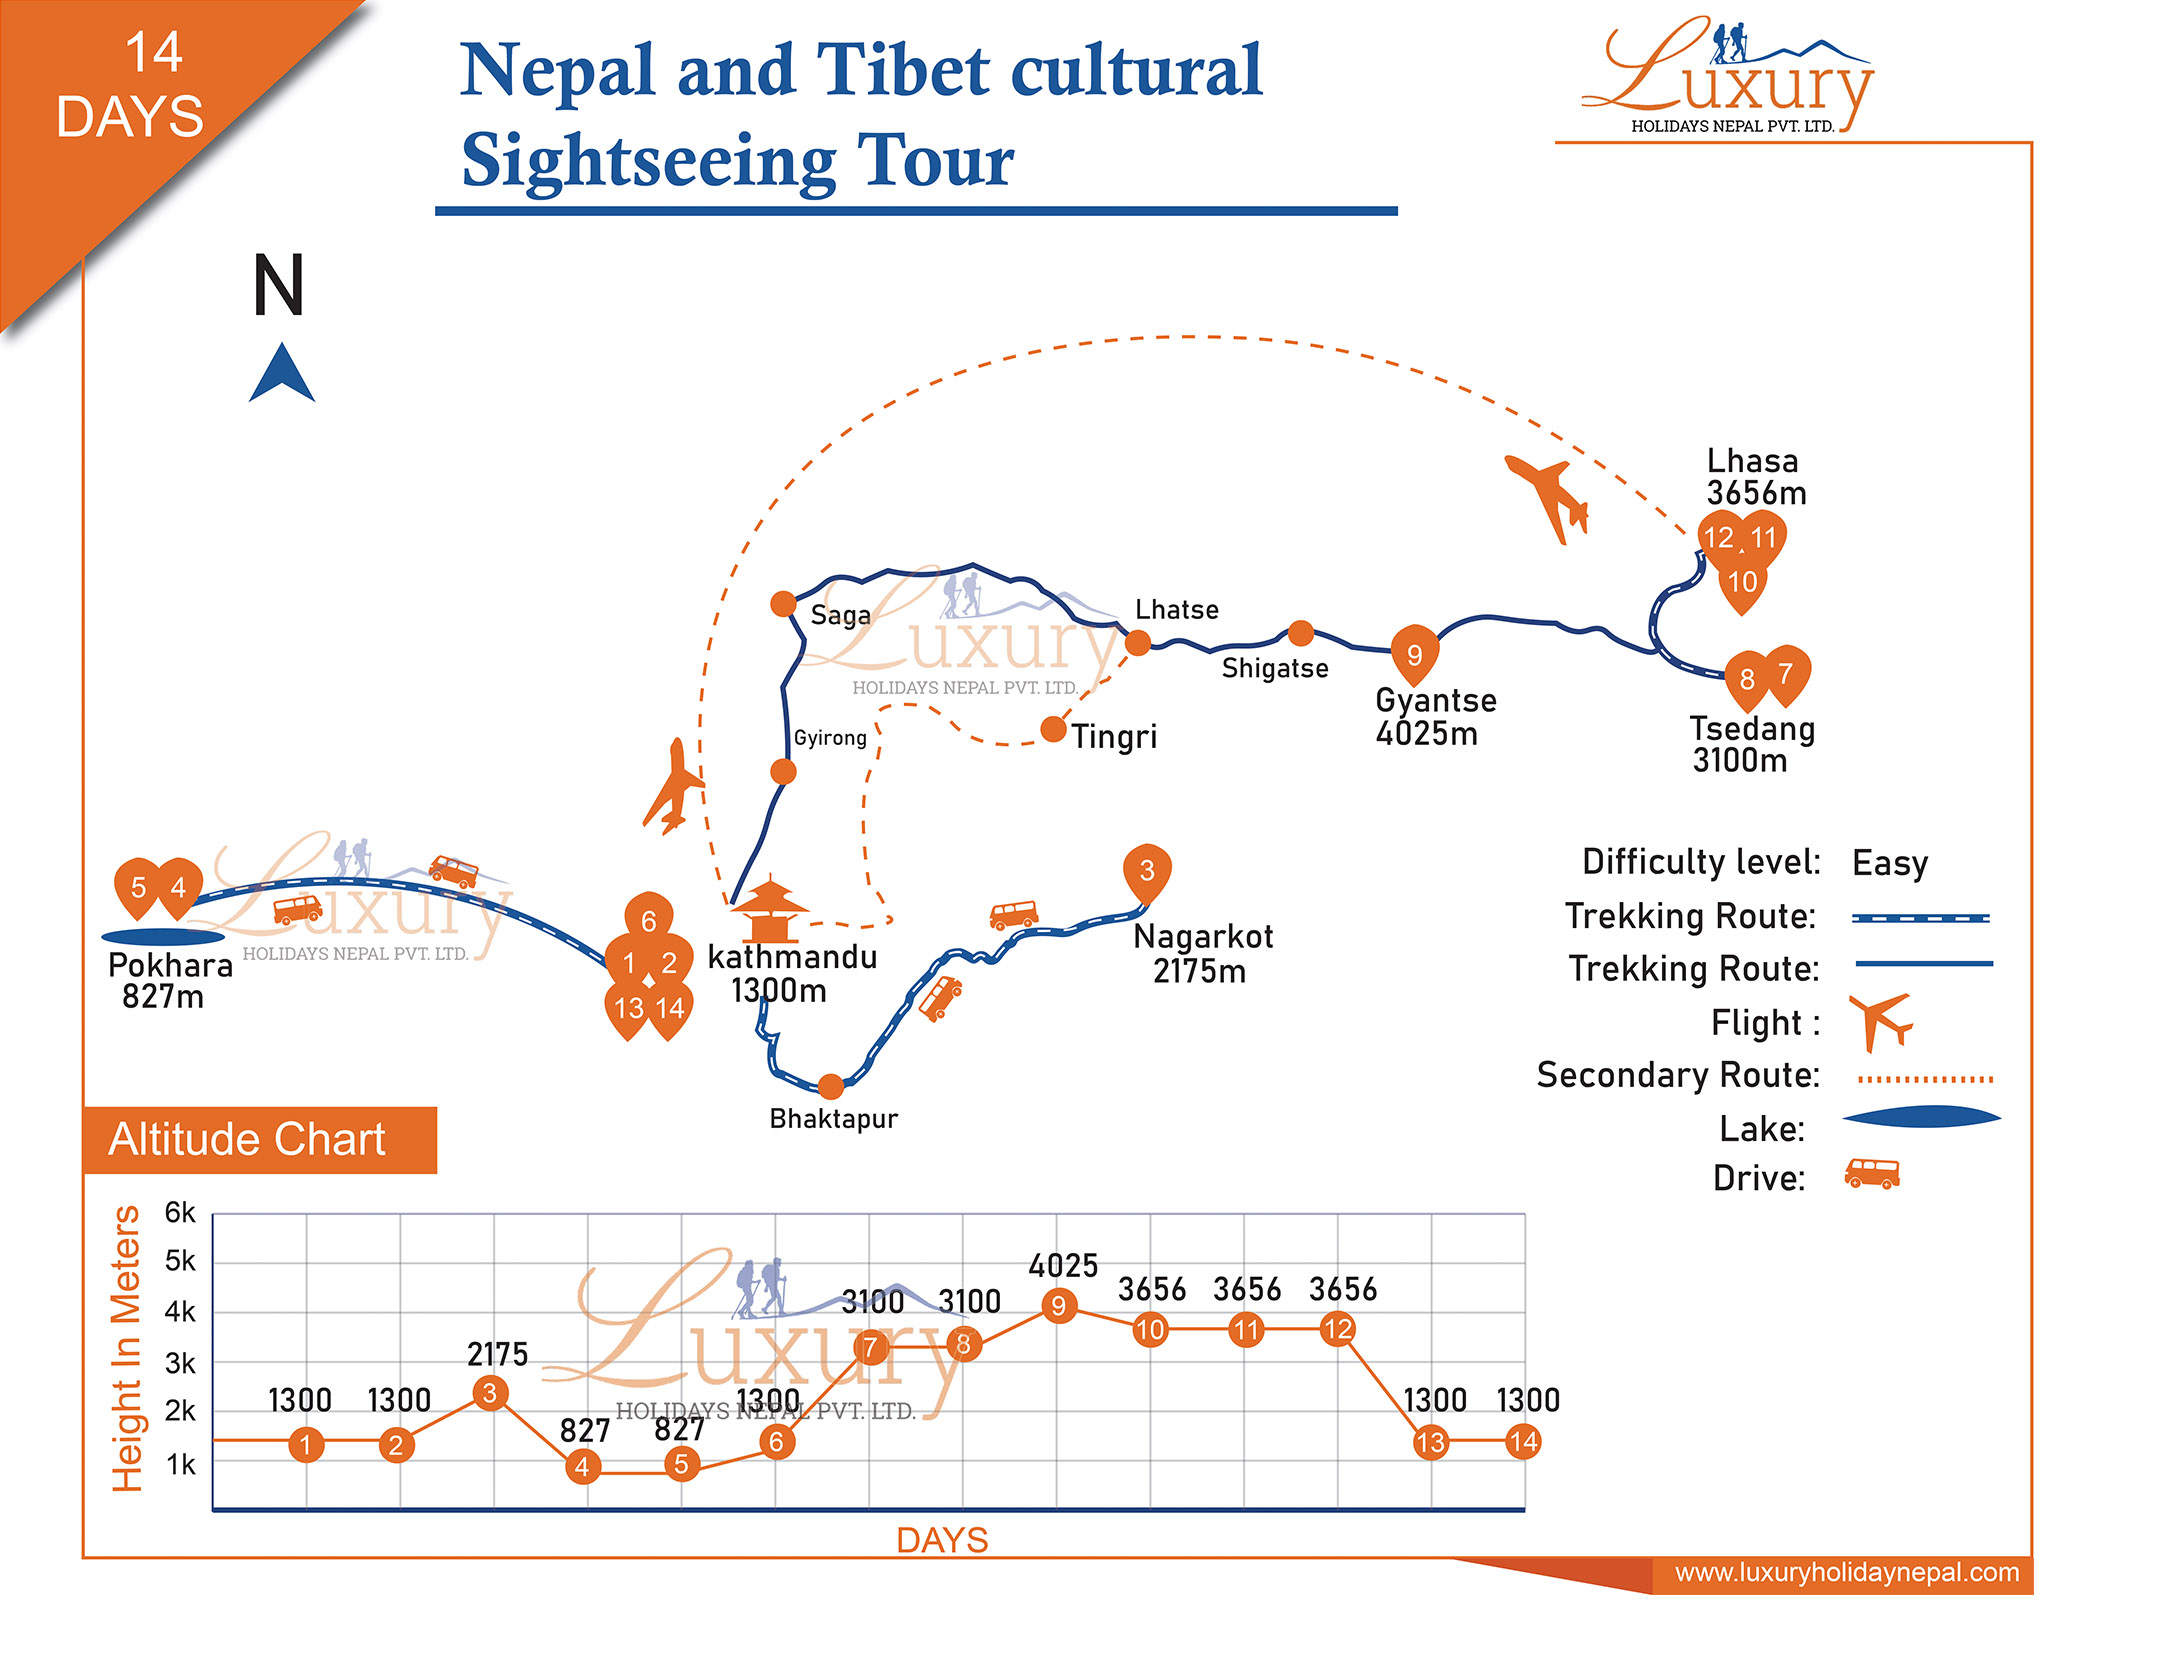 Nepal and Tibet cultural sightseeing Tour Trip Map